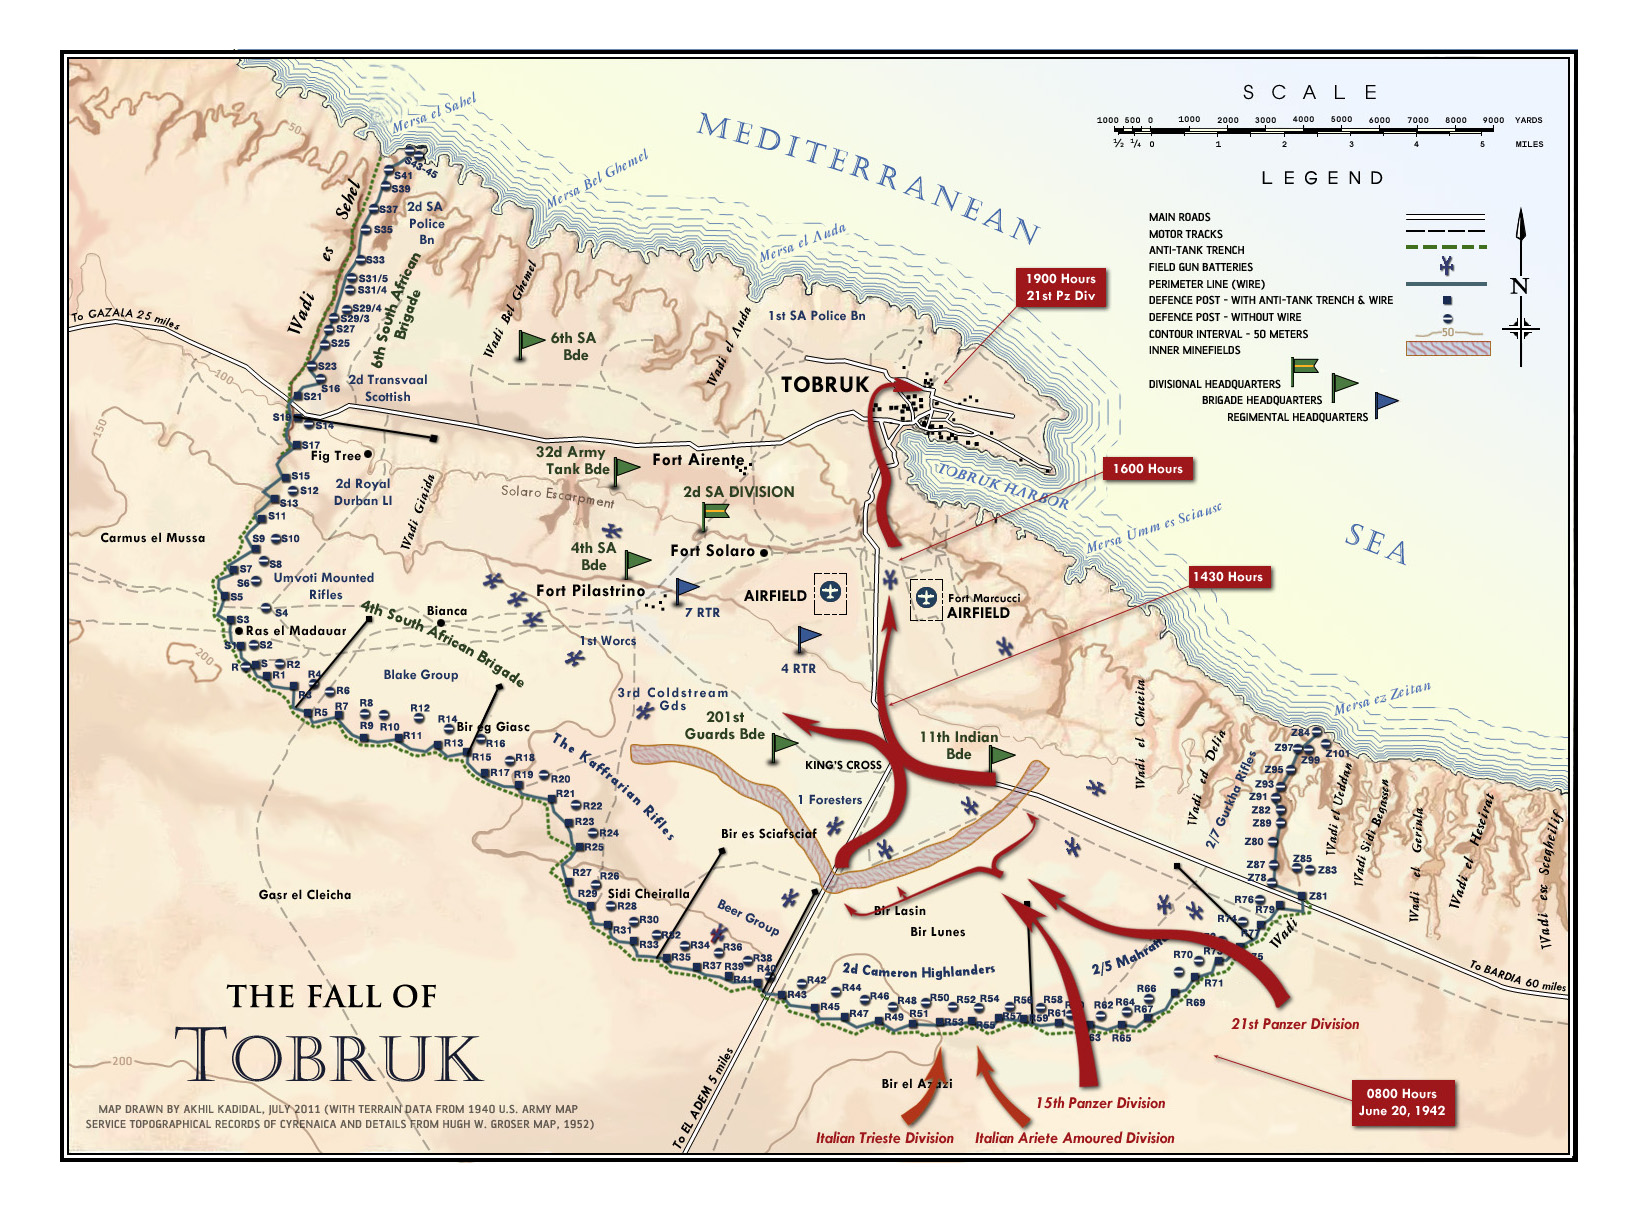 map-of-the-fall-of-tobruk